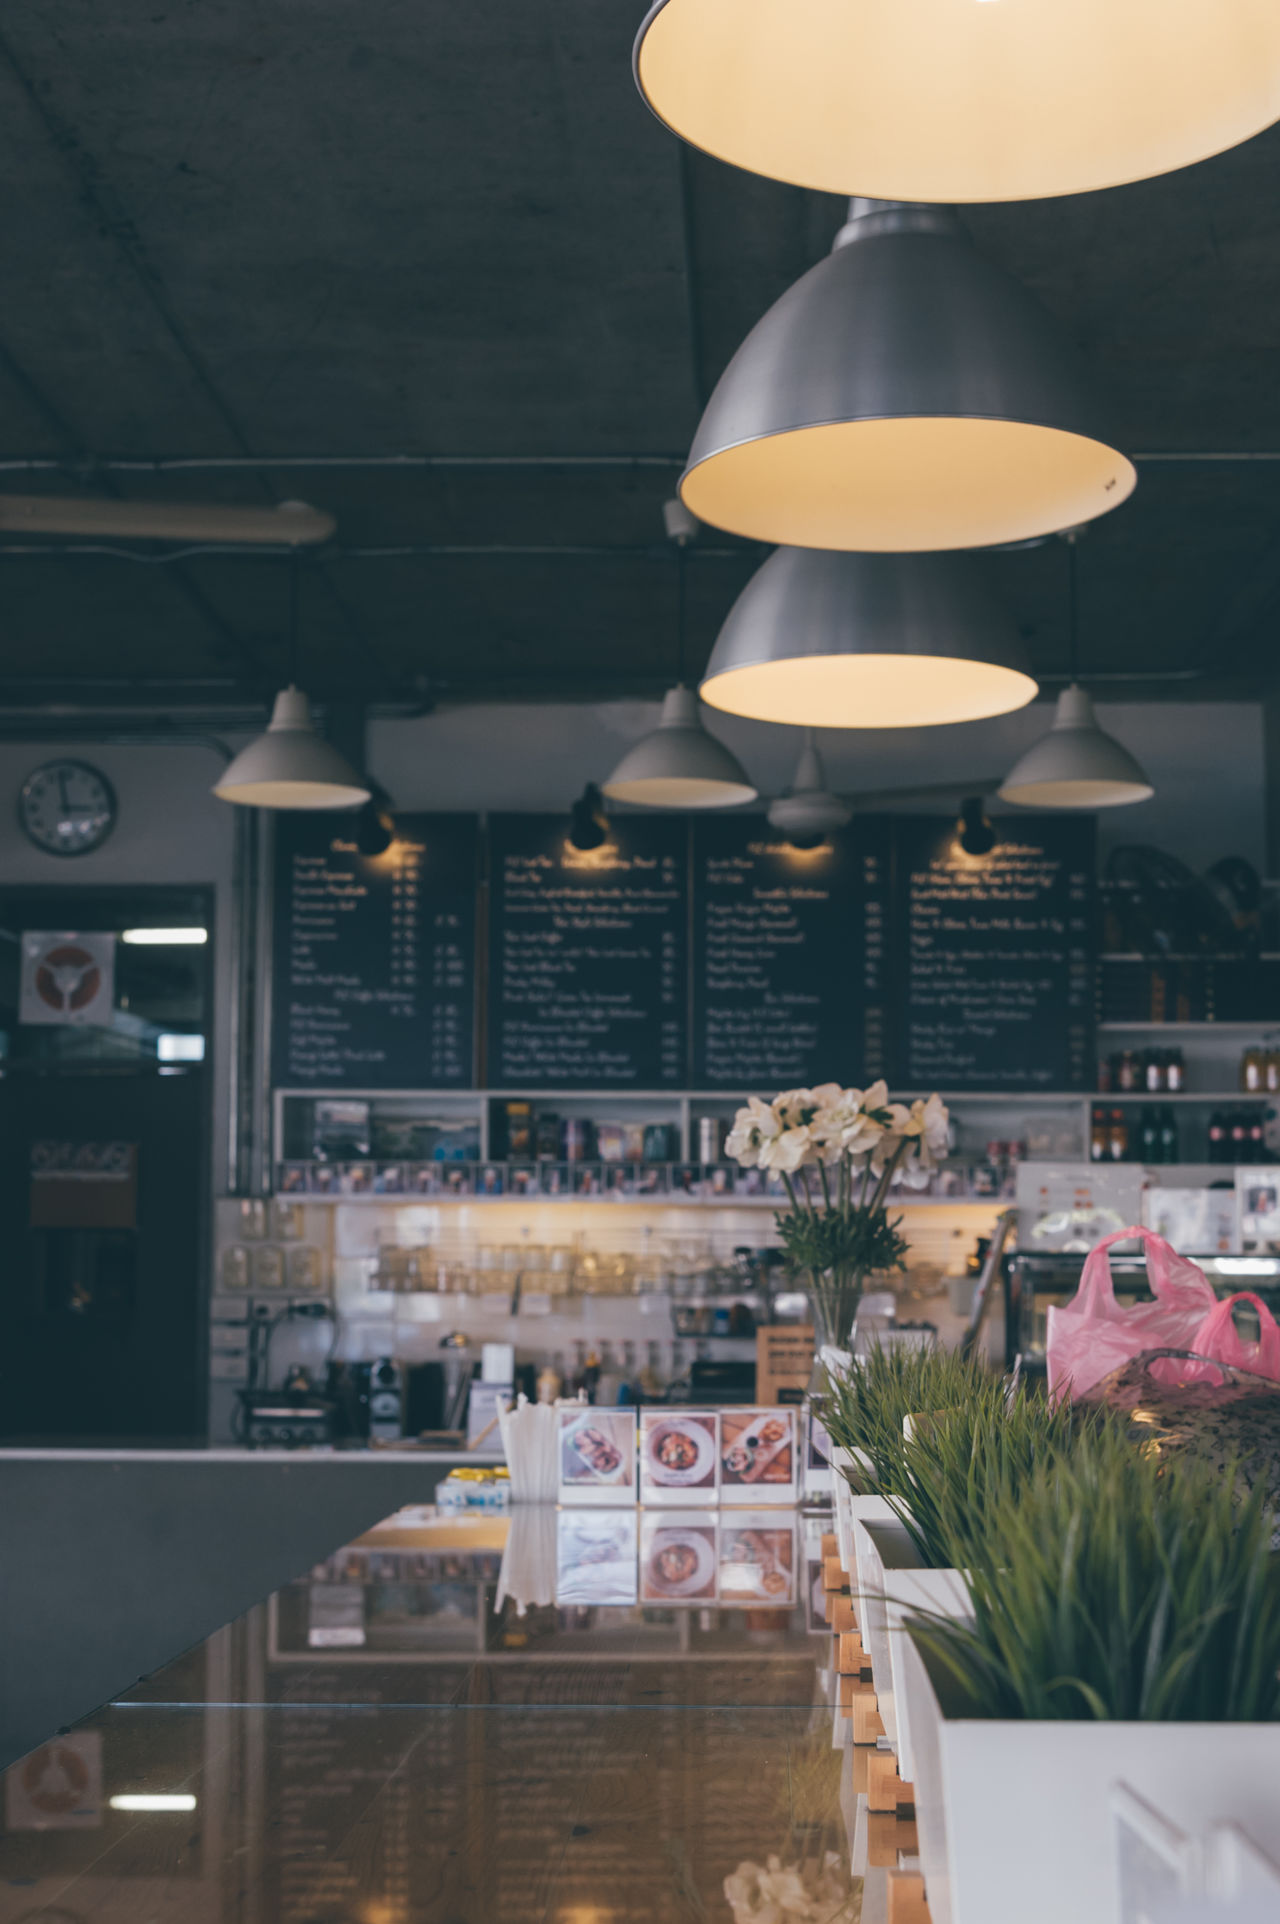 Achitecture Adapted To The City Architecture Beverage Break Cafe Coffee Shop Design Dessert Drink Film Flower Flowers Food Freshness Illuminated Indoors  Interior Design Lighting Equipment Loft Menu Relaxing Shop Vintage Wood The City Light